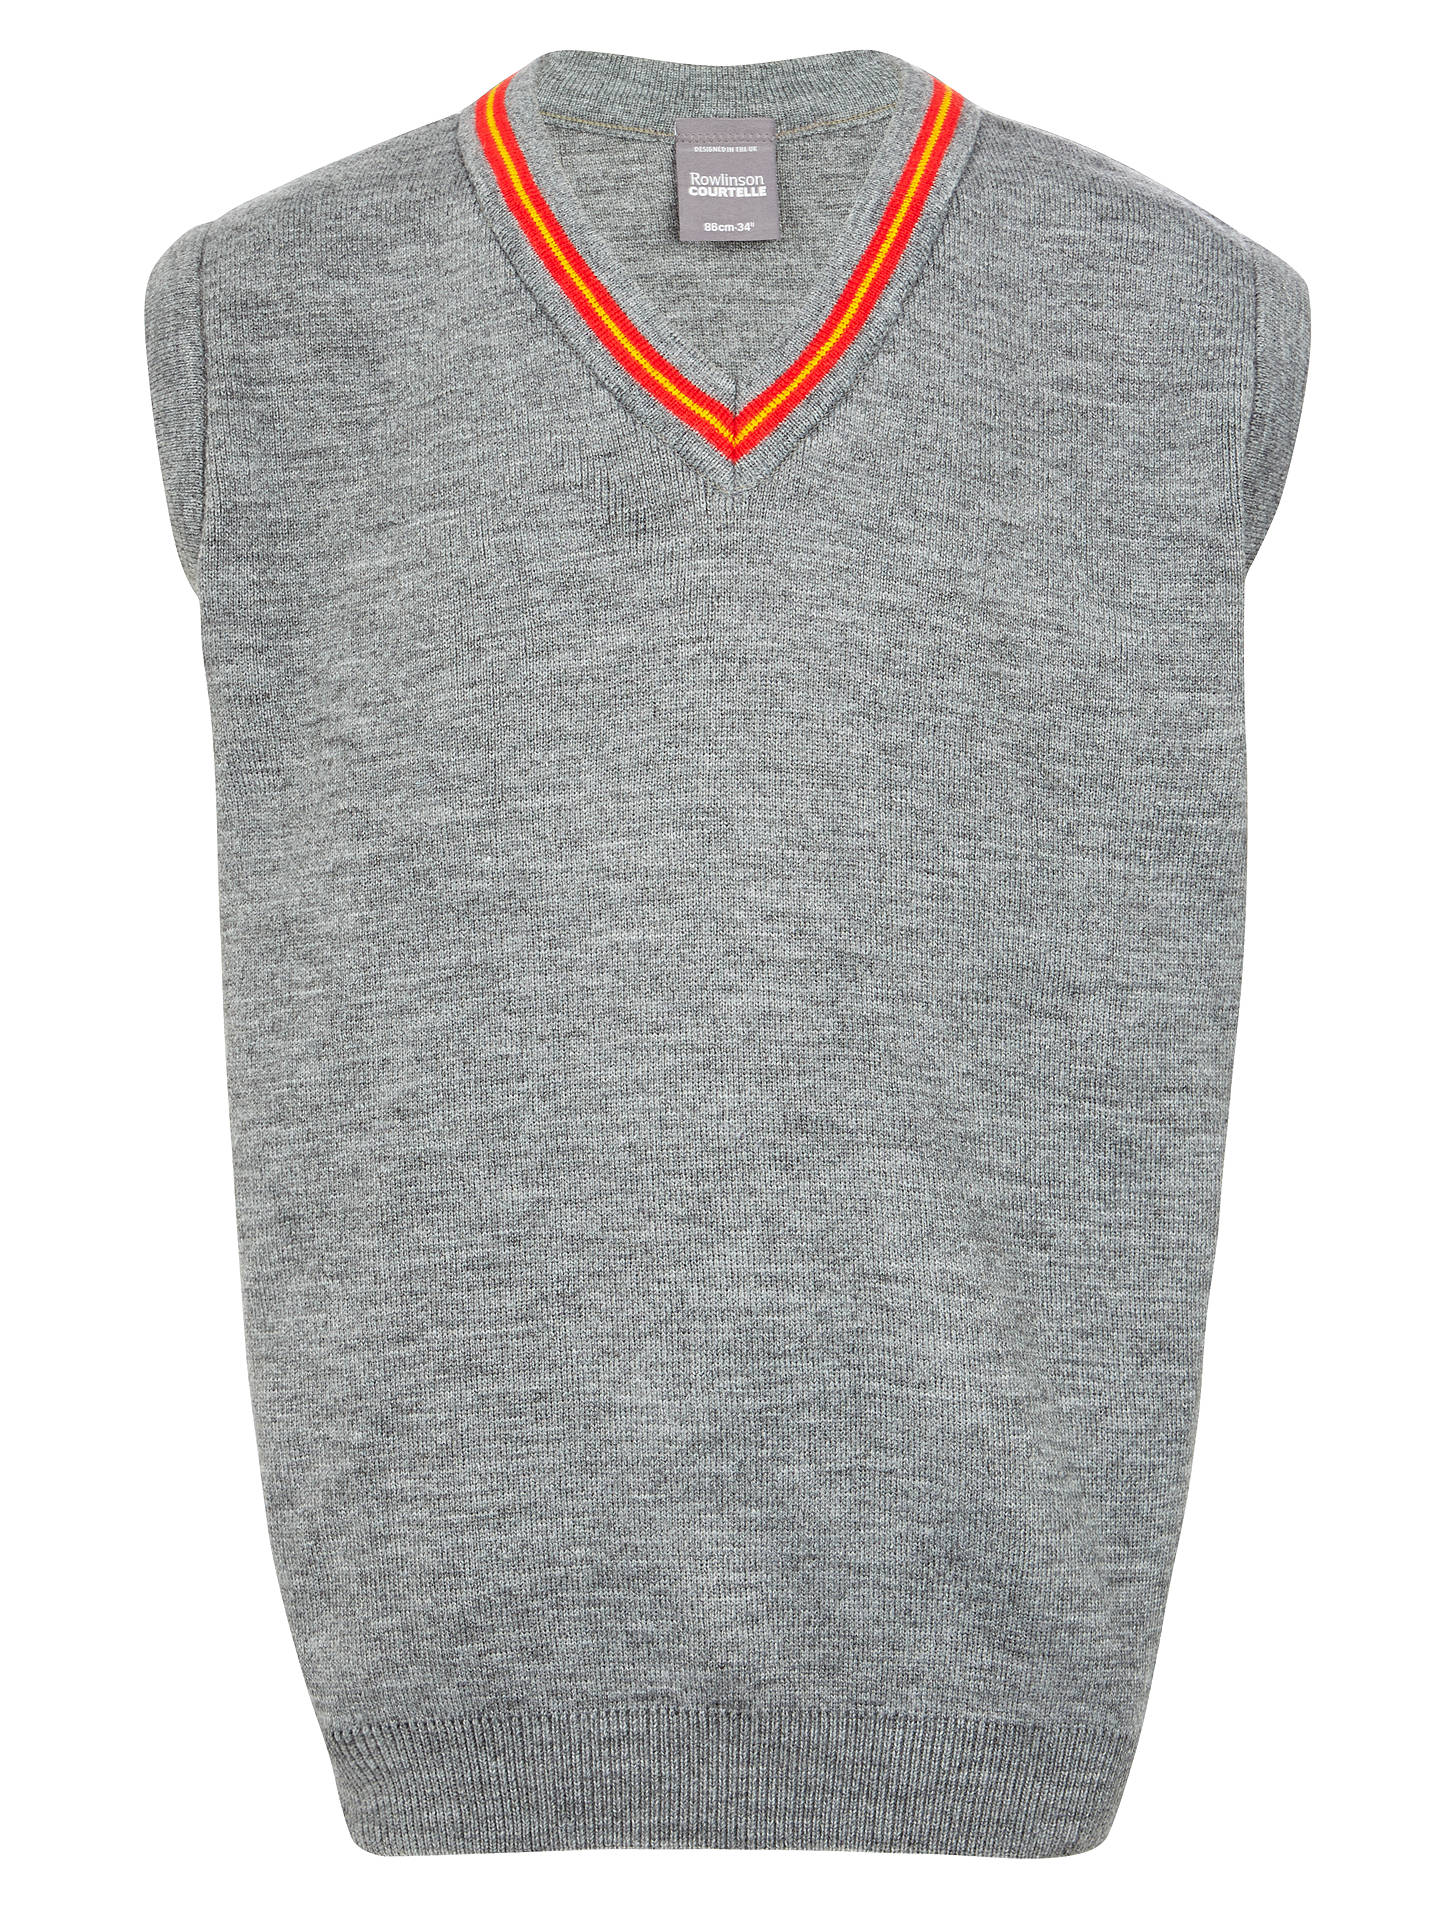 "BuySt John's College Slipover, Grey, Chest 24"" Online at johnlewis.com"